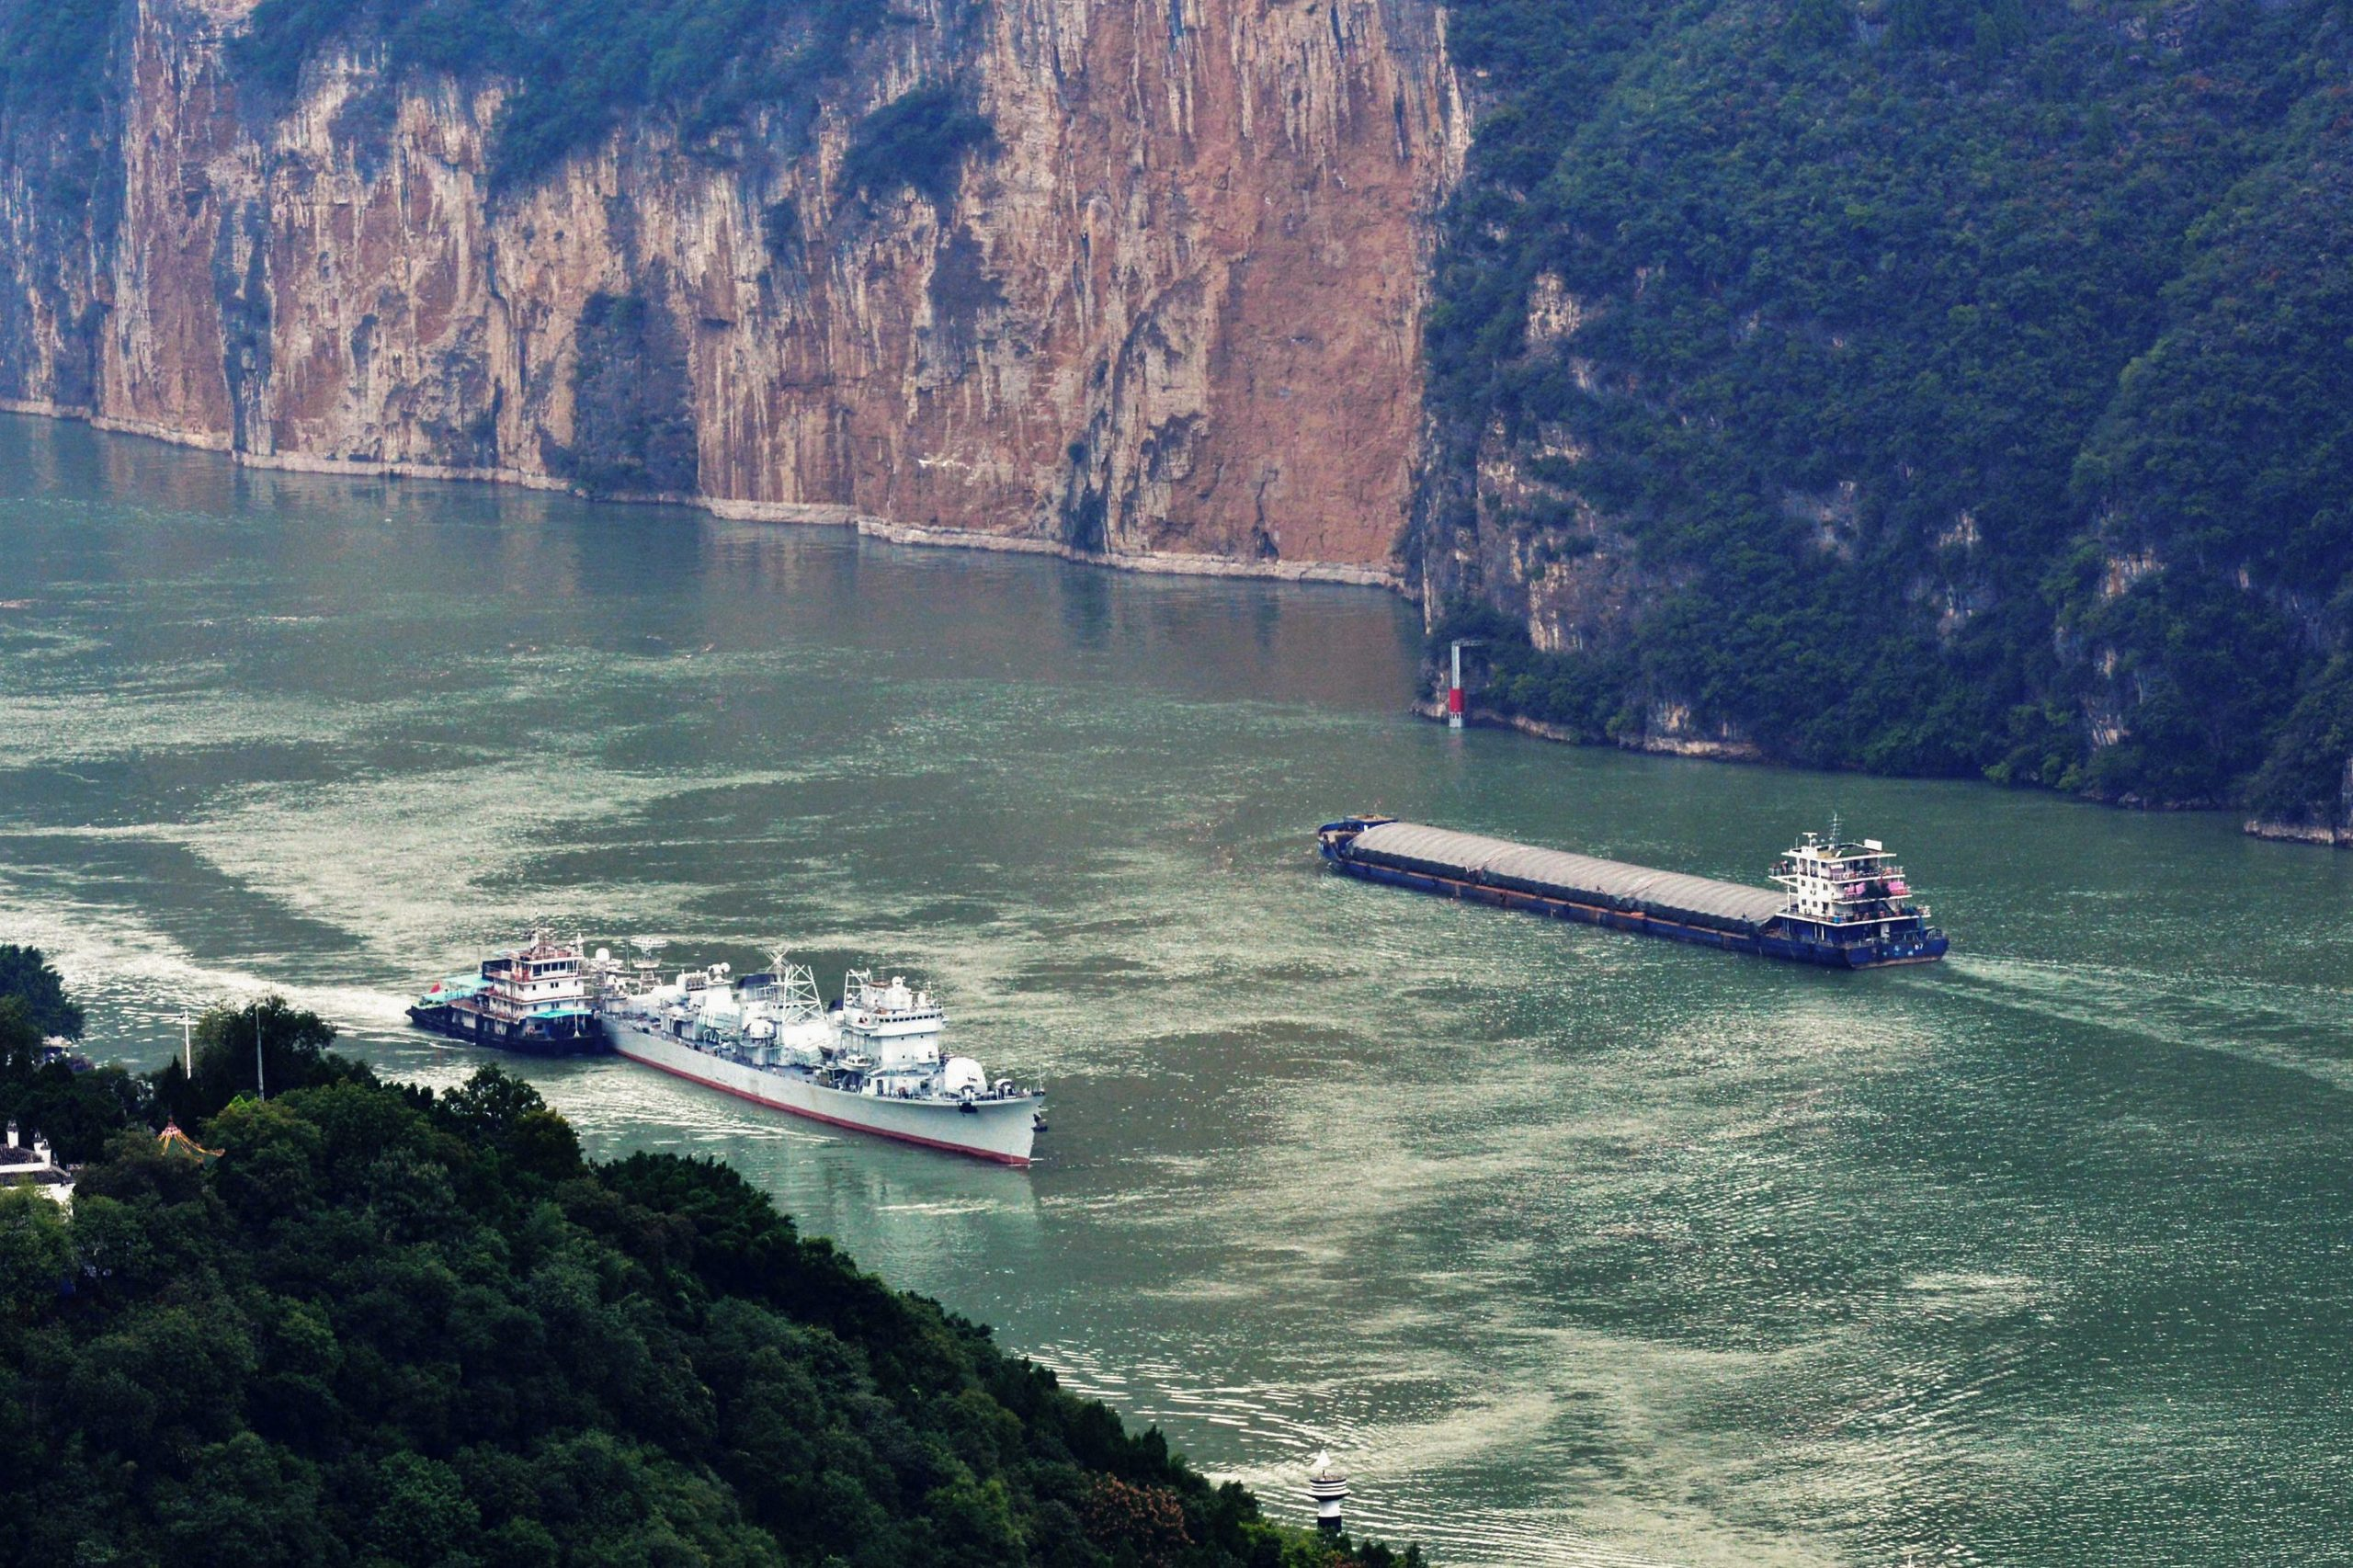 The Zhuhai, a Chinese guided-missile destroyers, cruises on the Yangtze River on Oct. 18. (STR/AFP via Getty Images)